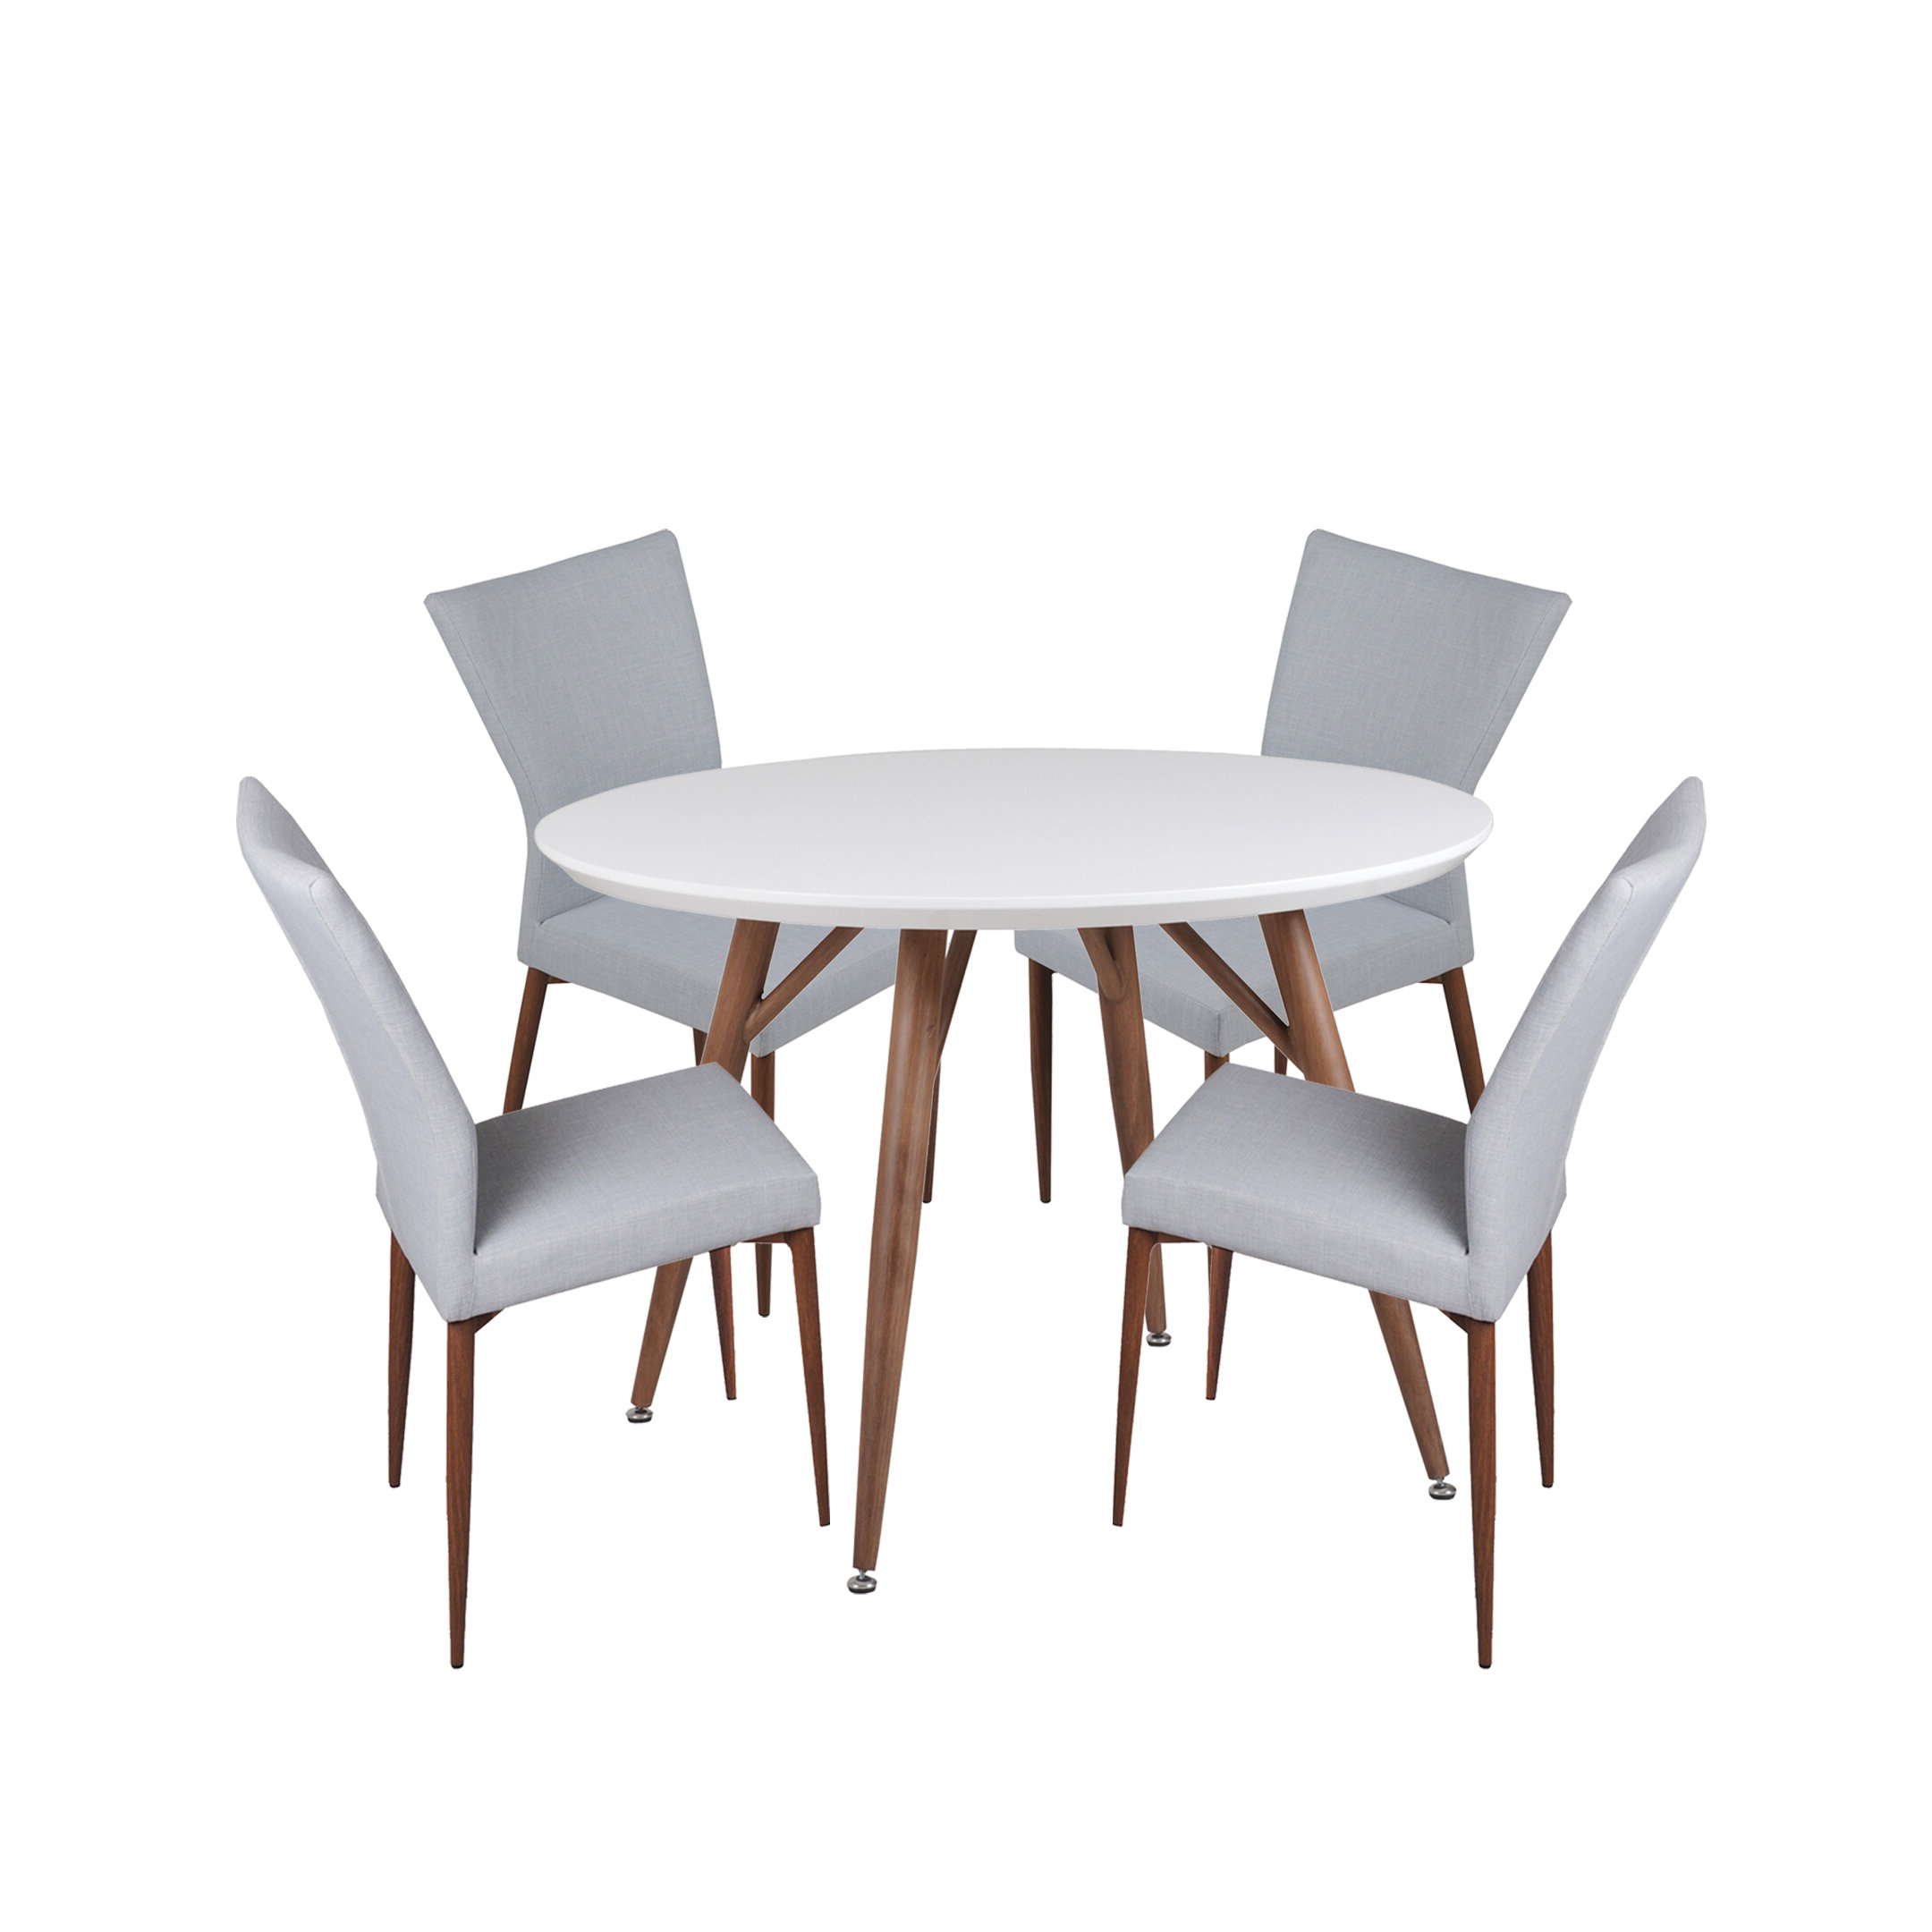 Wayfair Intended For Latest 5 Piece Breakfast Nook Dining Sets (View 6 of 25)